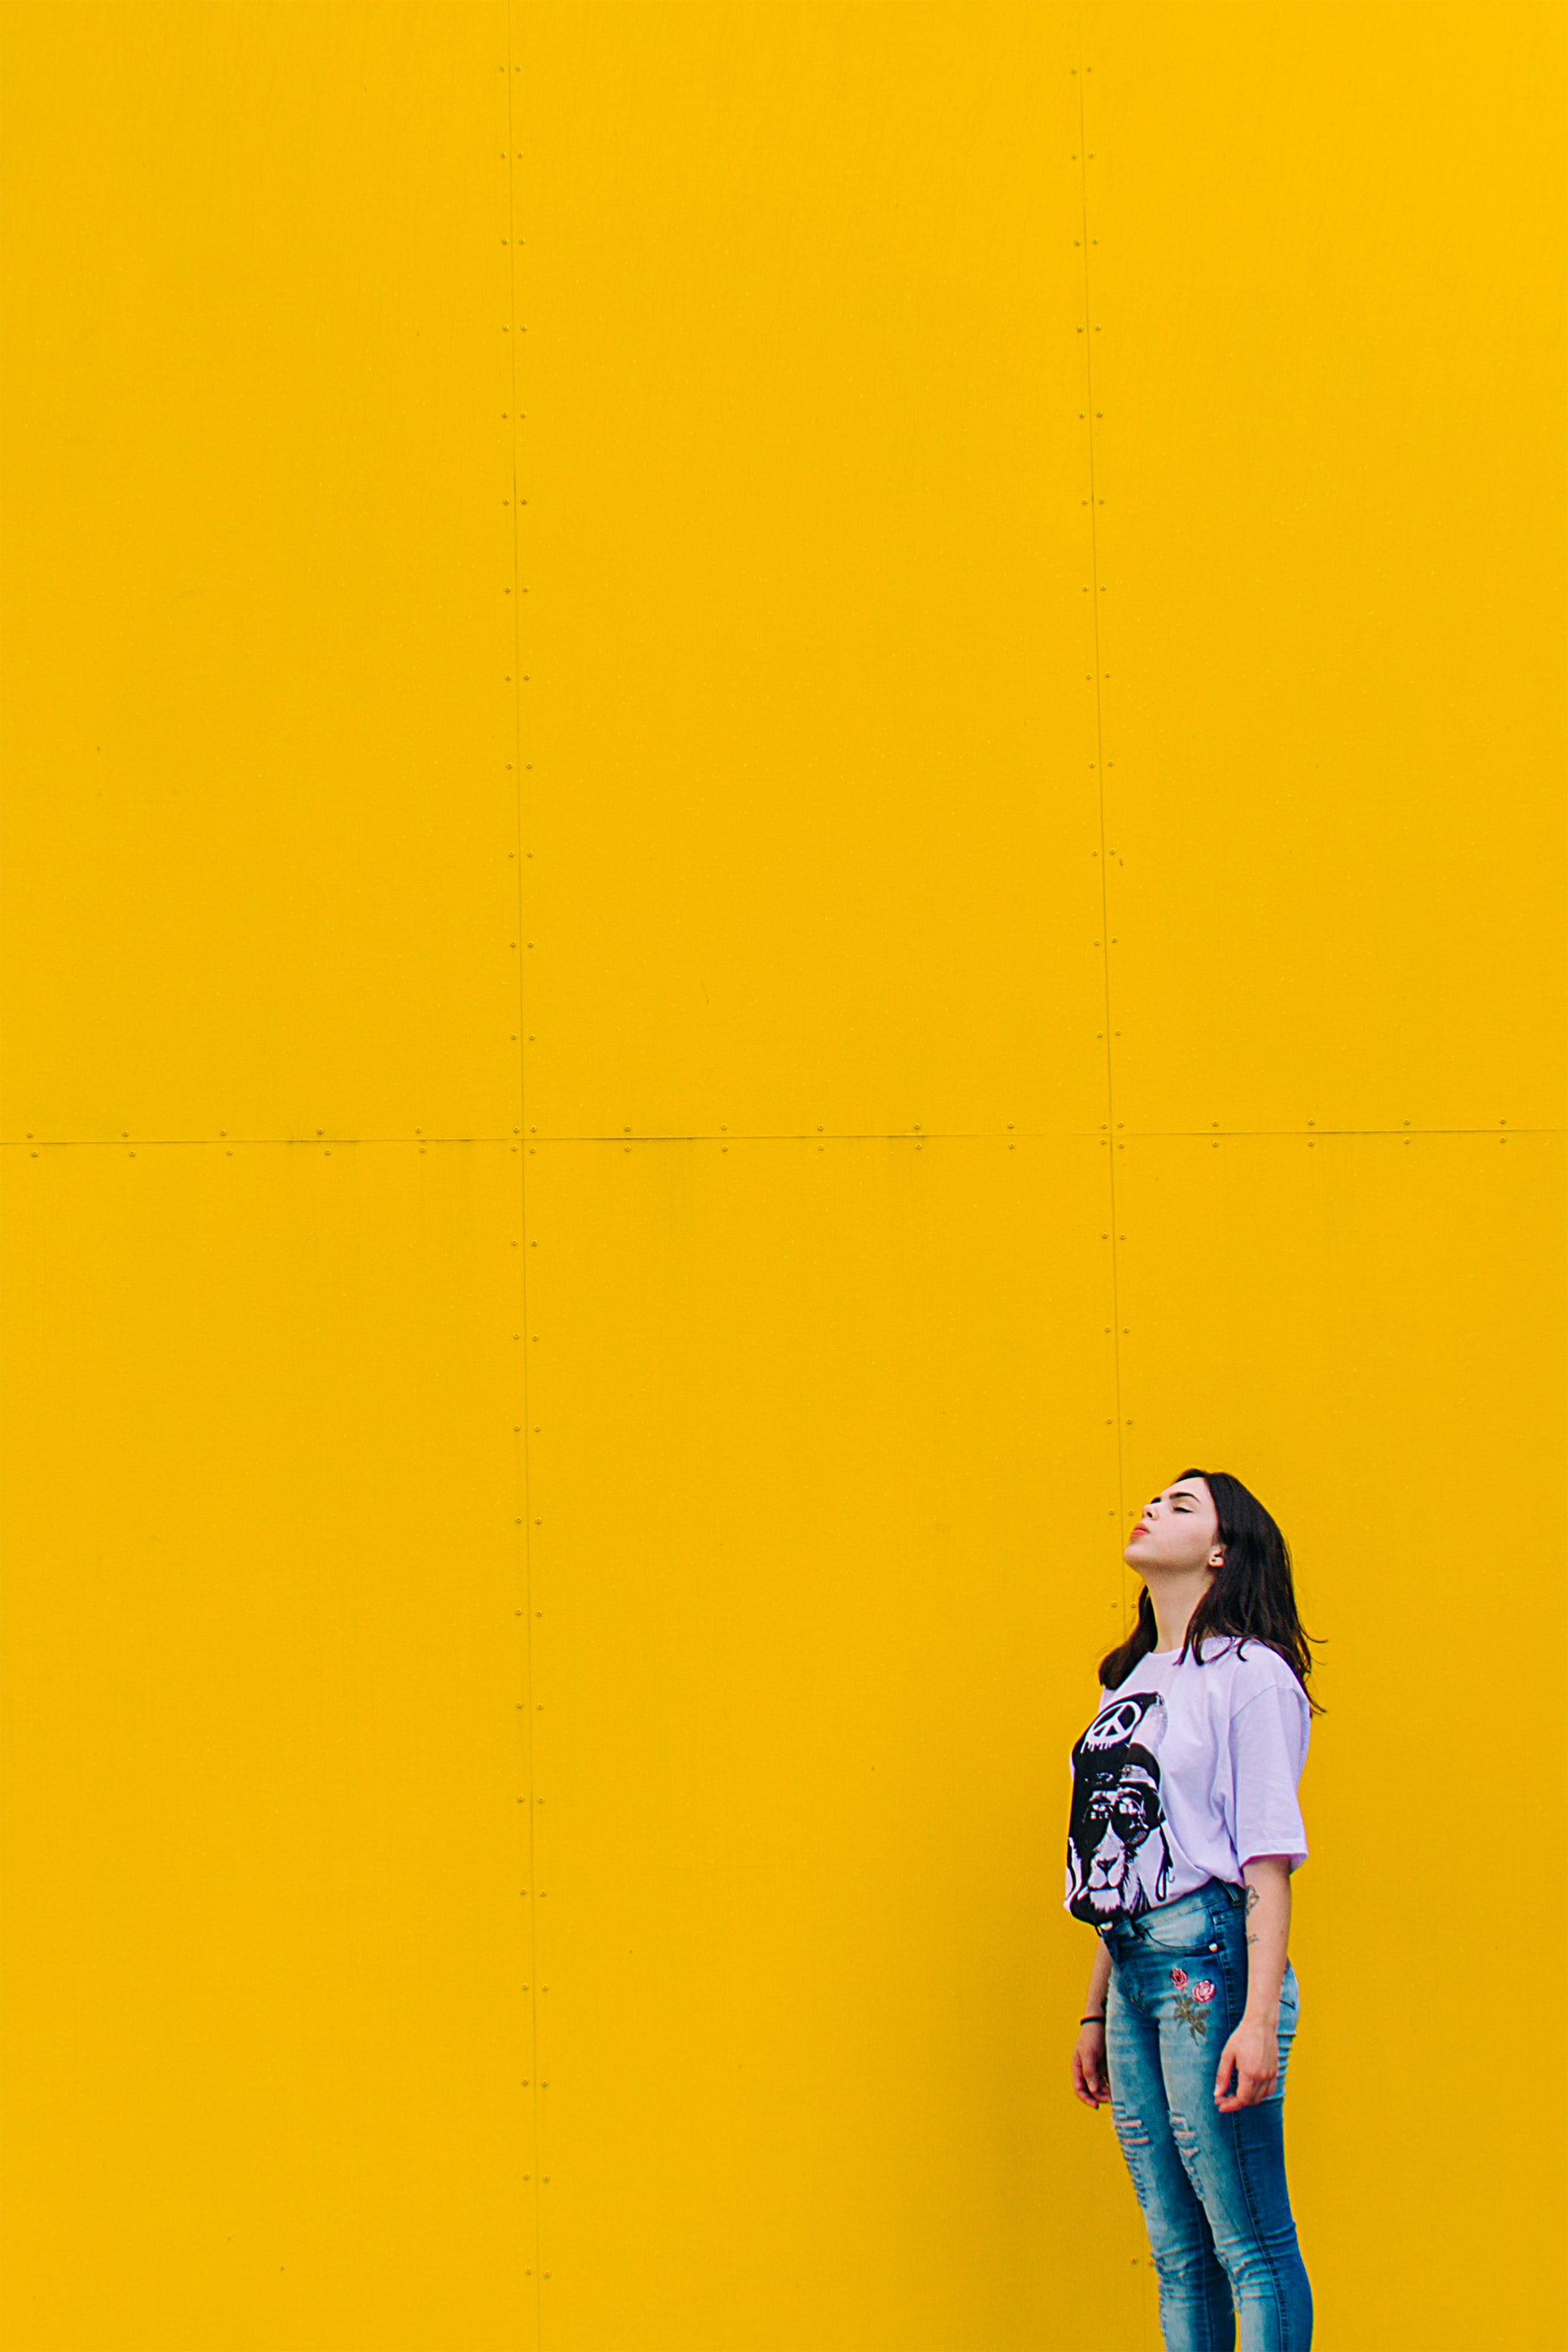 woman in purple shirt standing beside yellow wall